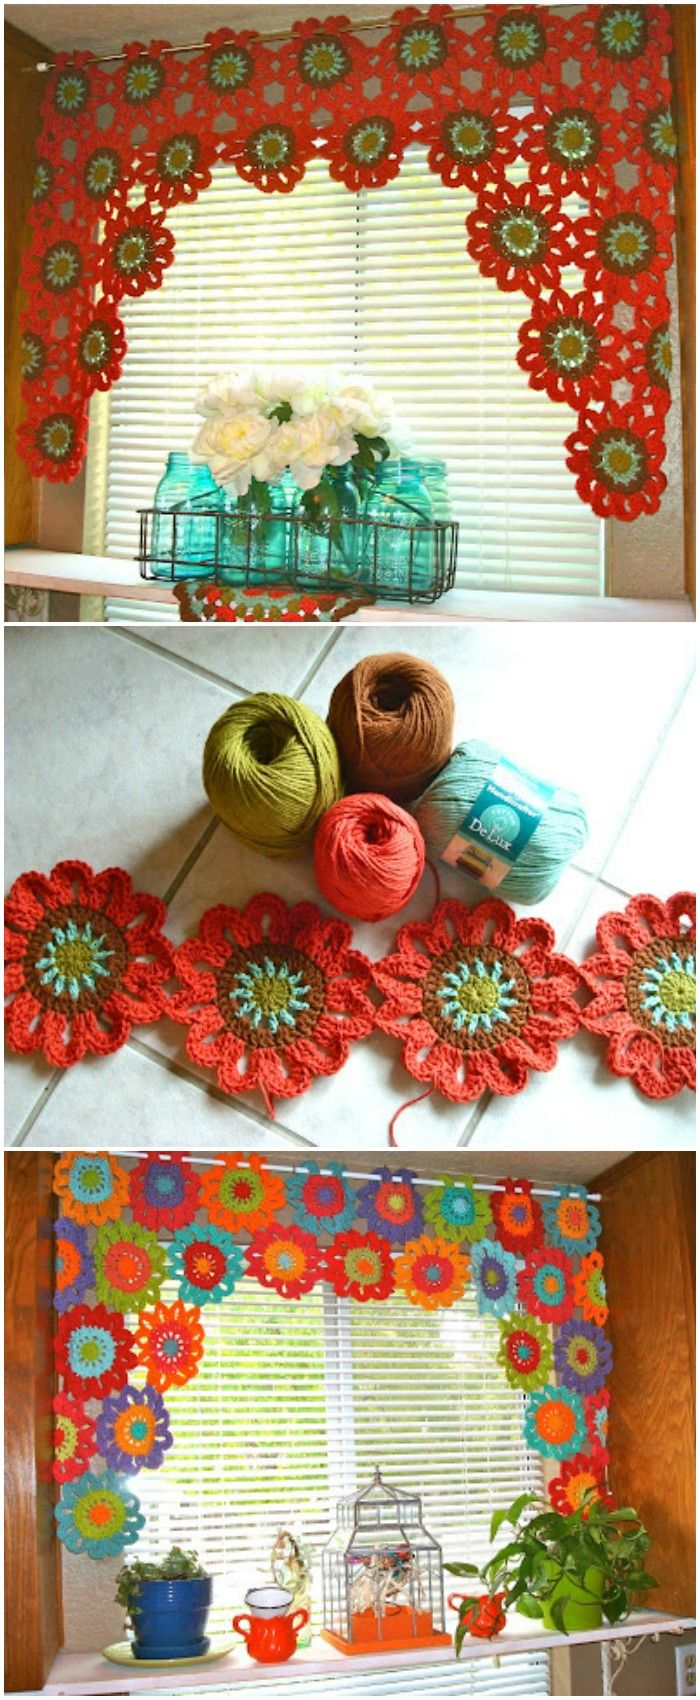 Easy crochet patterns is  very versatile project and can be so much fun diy crocheted valance also rh pinterest